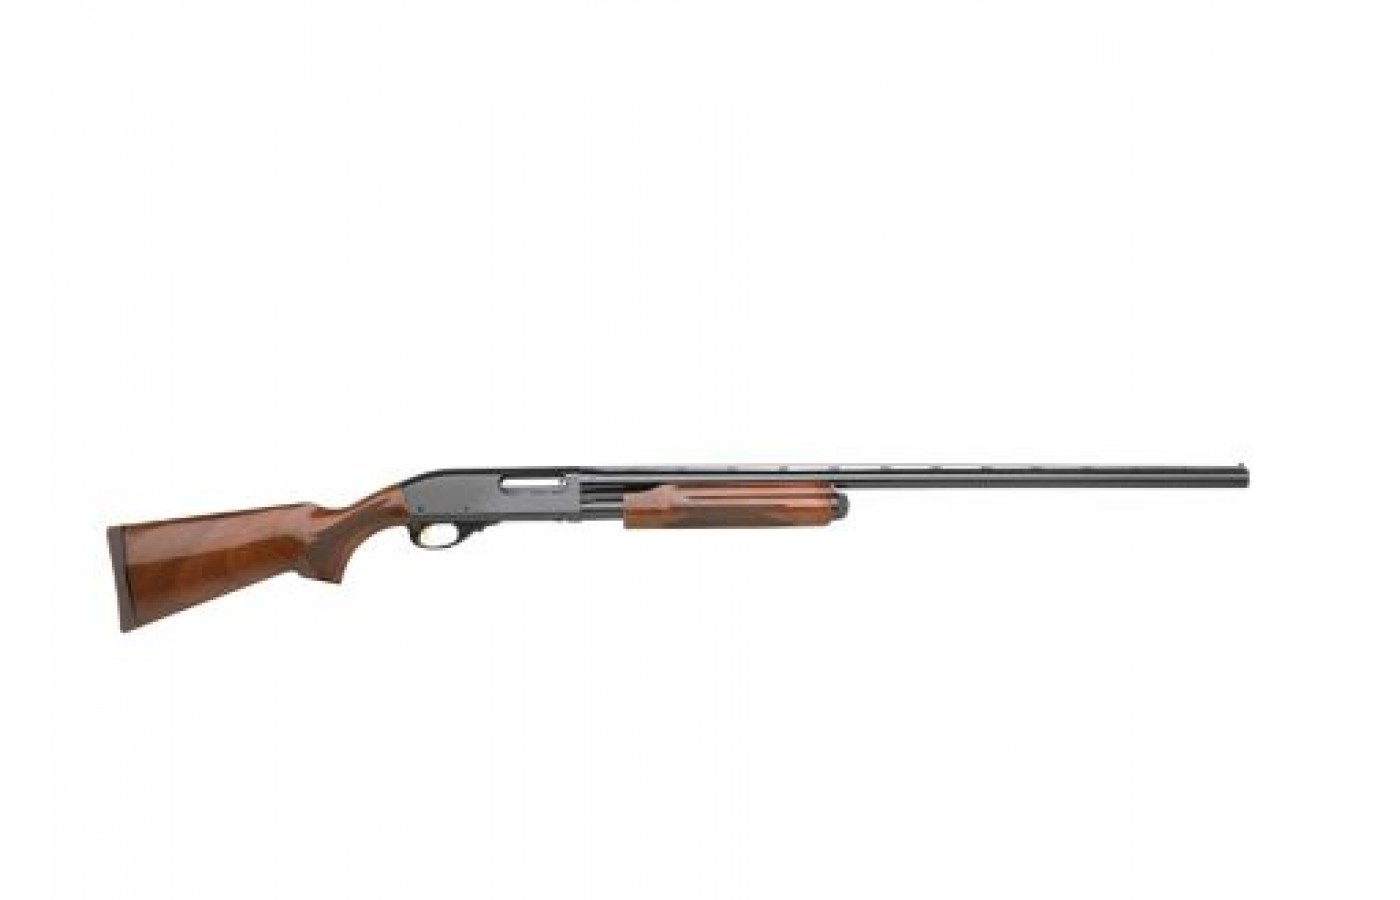 The 870 Wingmaster 12 Gauge Pump Shotgun